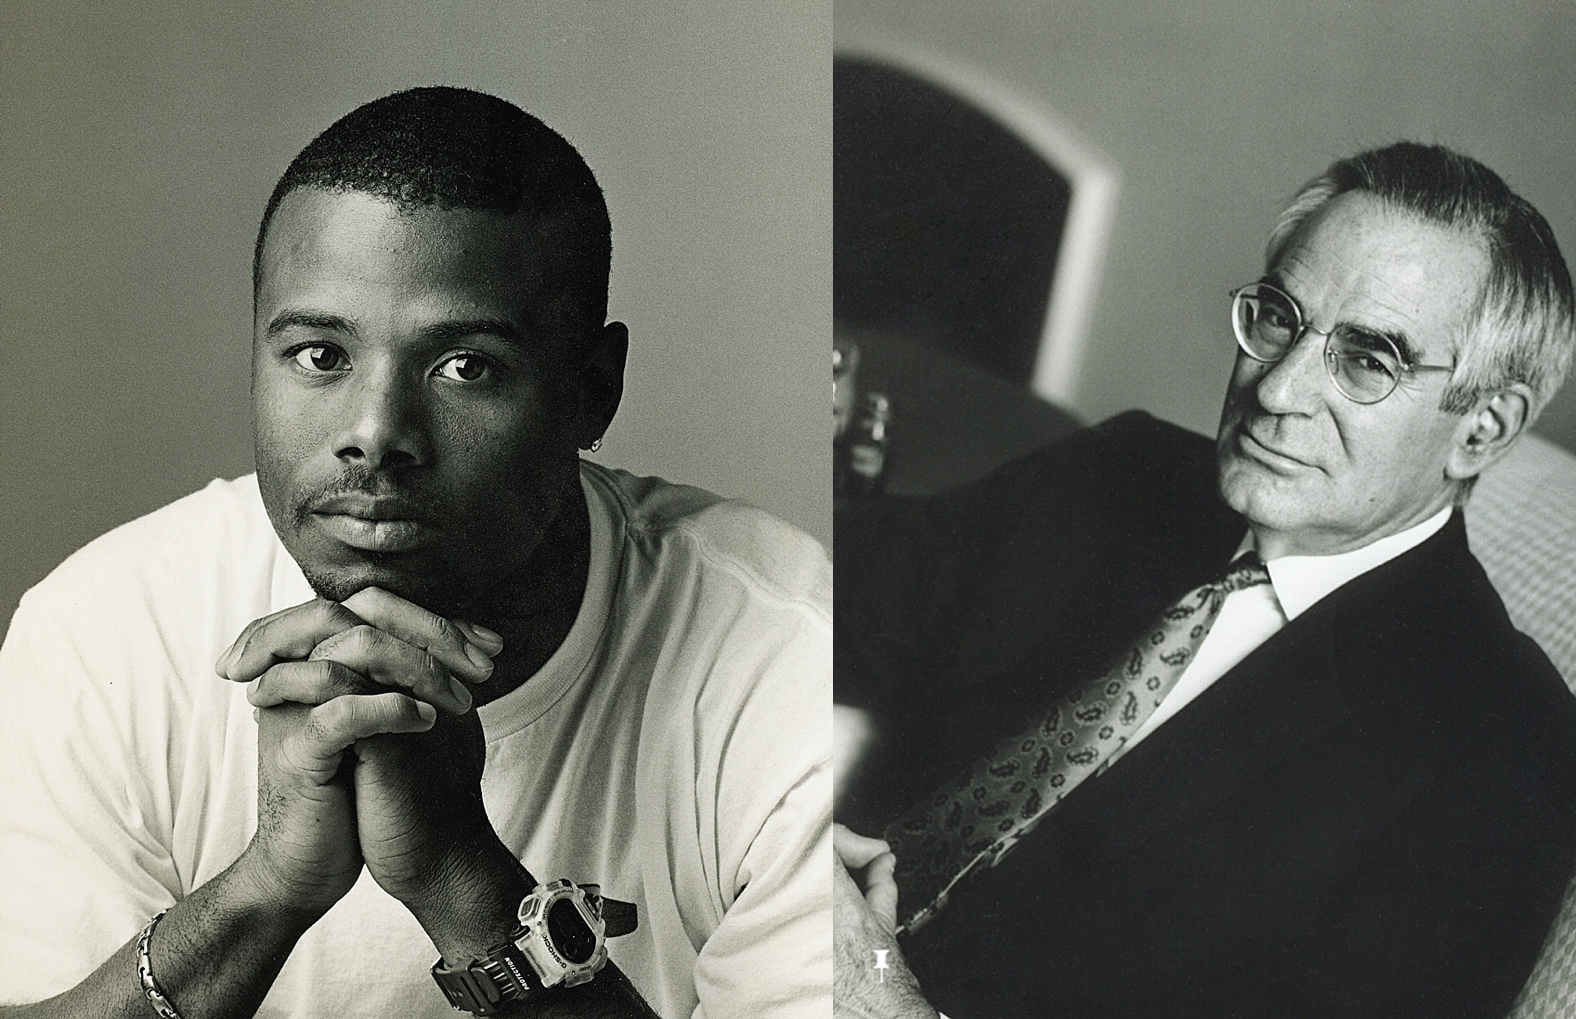 Ken Griffey, Jr. | Baseball Player,                                      David Halberstam | Legendary Author